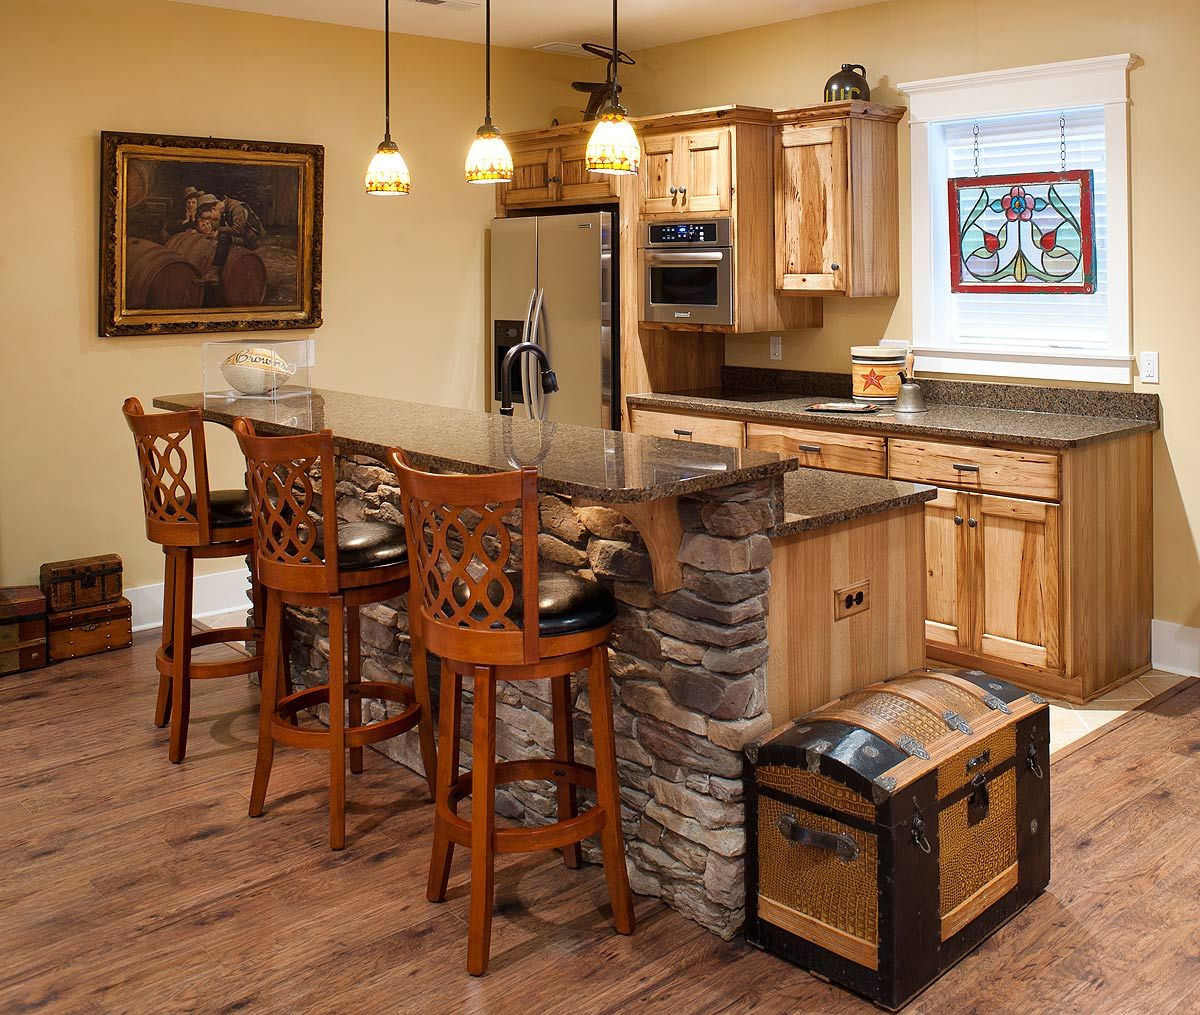 Rustic Hickory Kitchen Cabinets | Rustic Hickory Pub ...